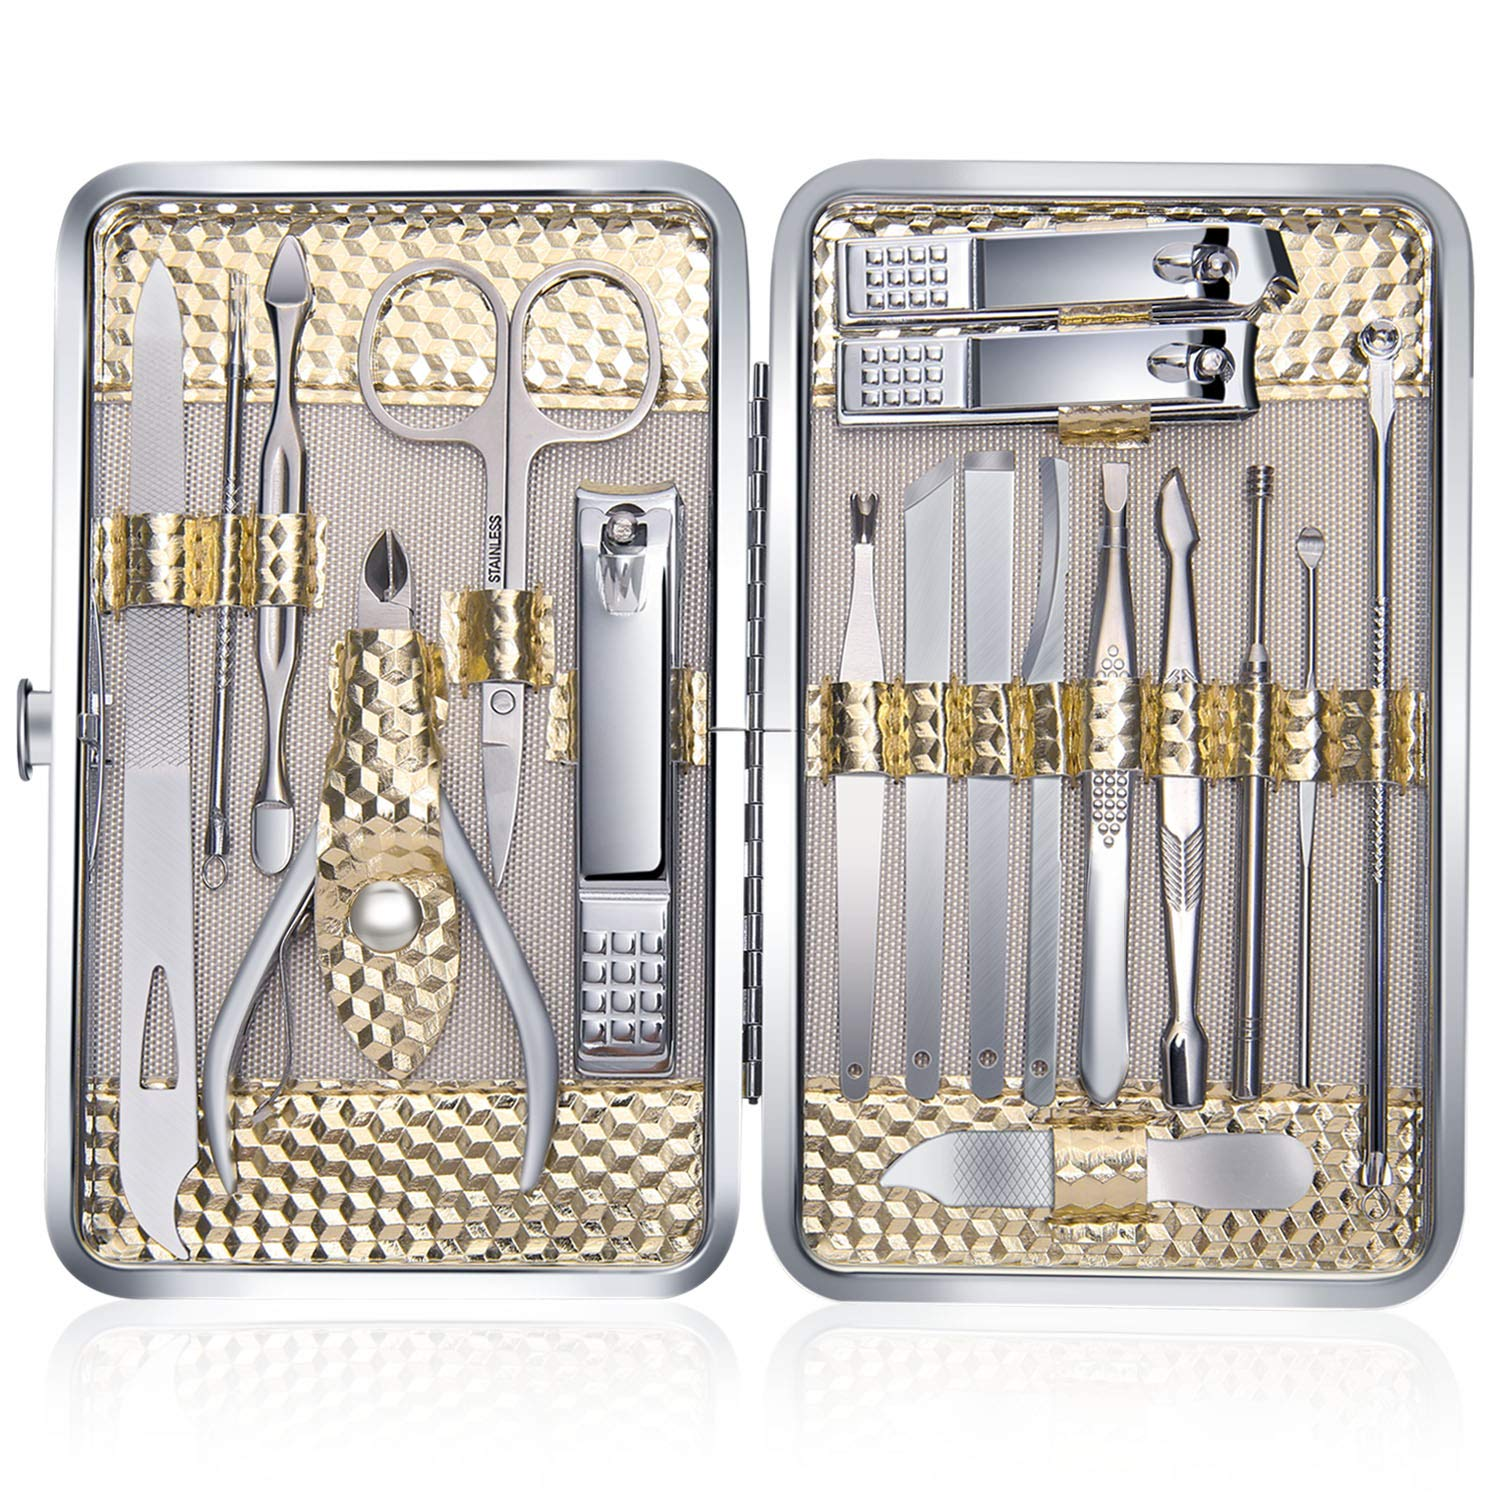 Manicure Set Professional Nail Clippers Kit Pedicure Care Tools-Stainless Steel Women Grooming Kit 18Pcs With PU Leather Case for Travel or Home (Gold)